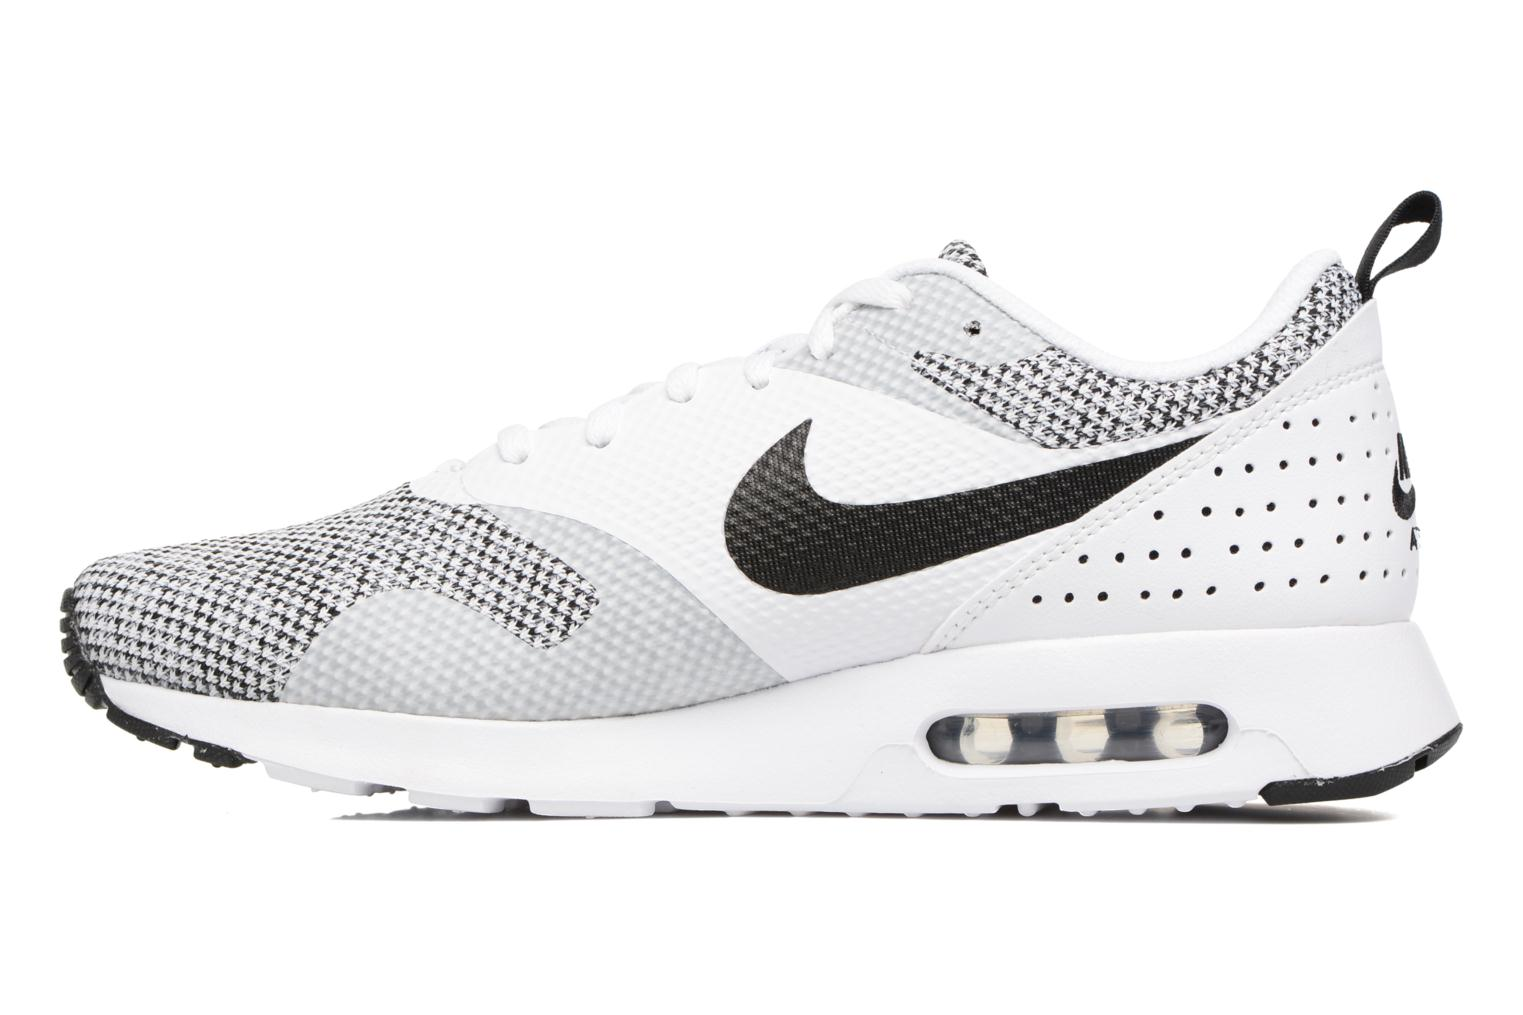 Nike Air Max Tavas Prm White/black-pure platinum